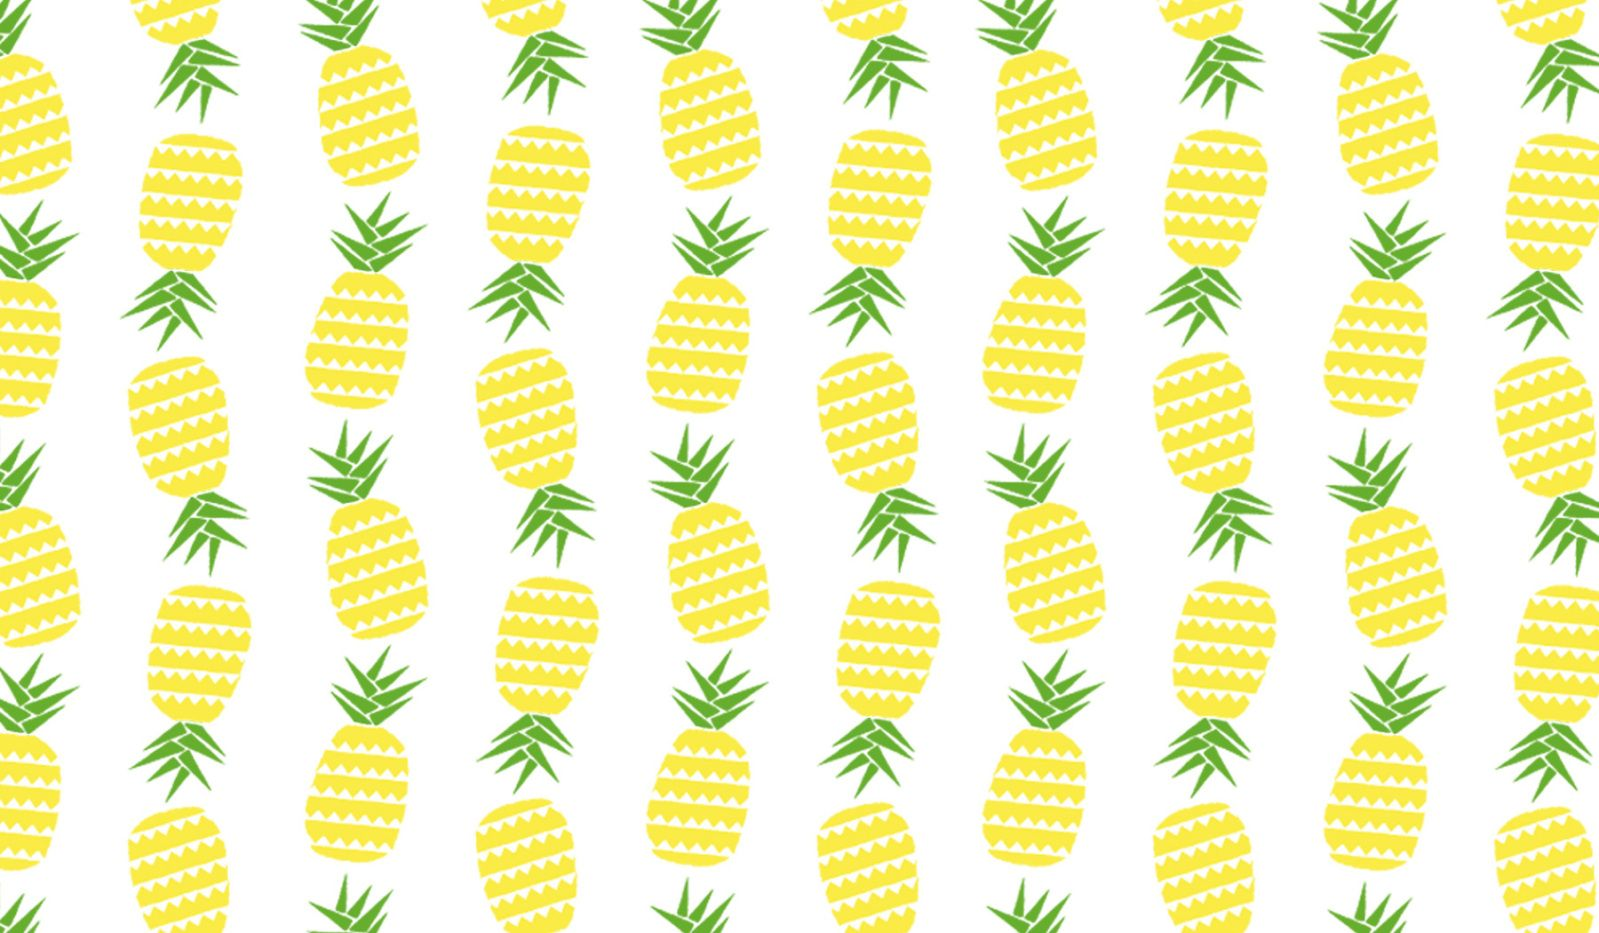 Tumblr Pineapple Wallpaper Macbook Wallpaper Computer Wallpaper